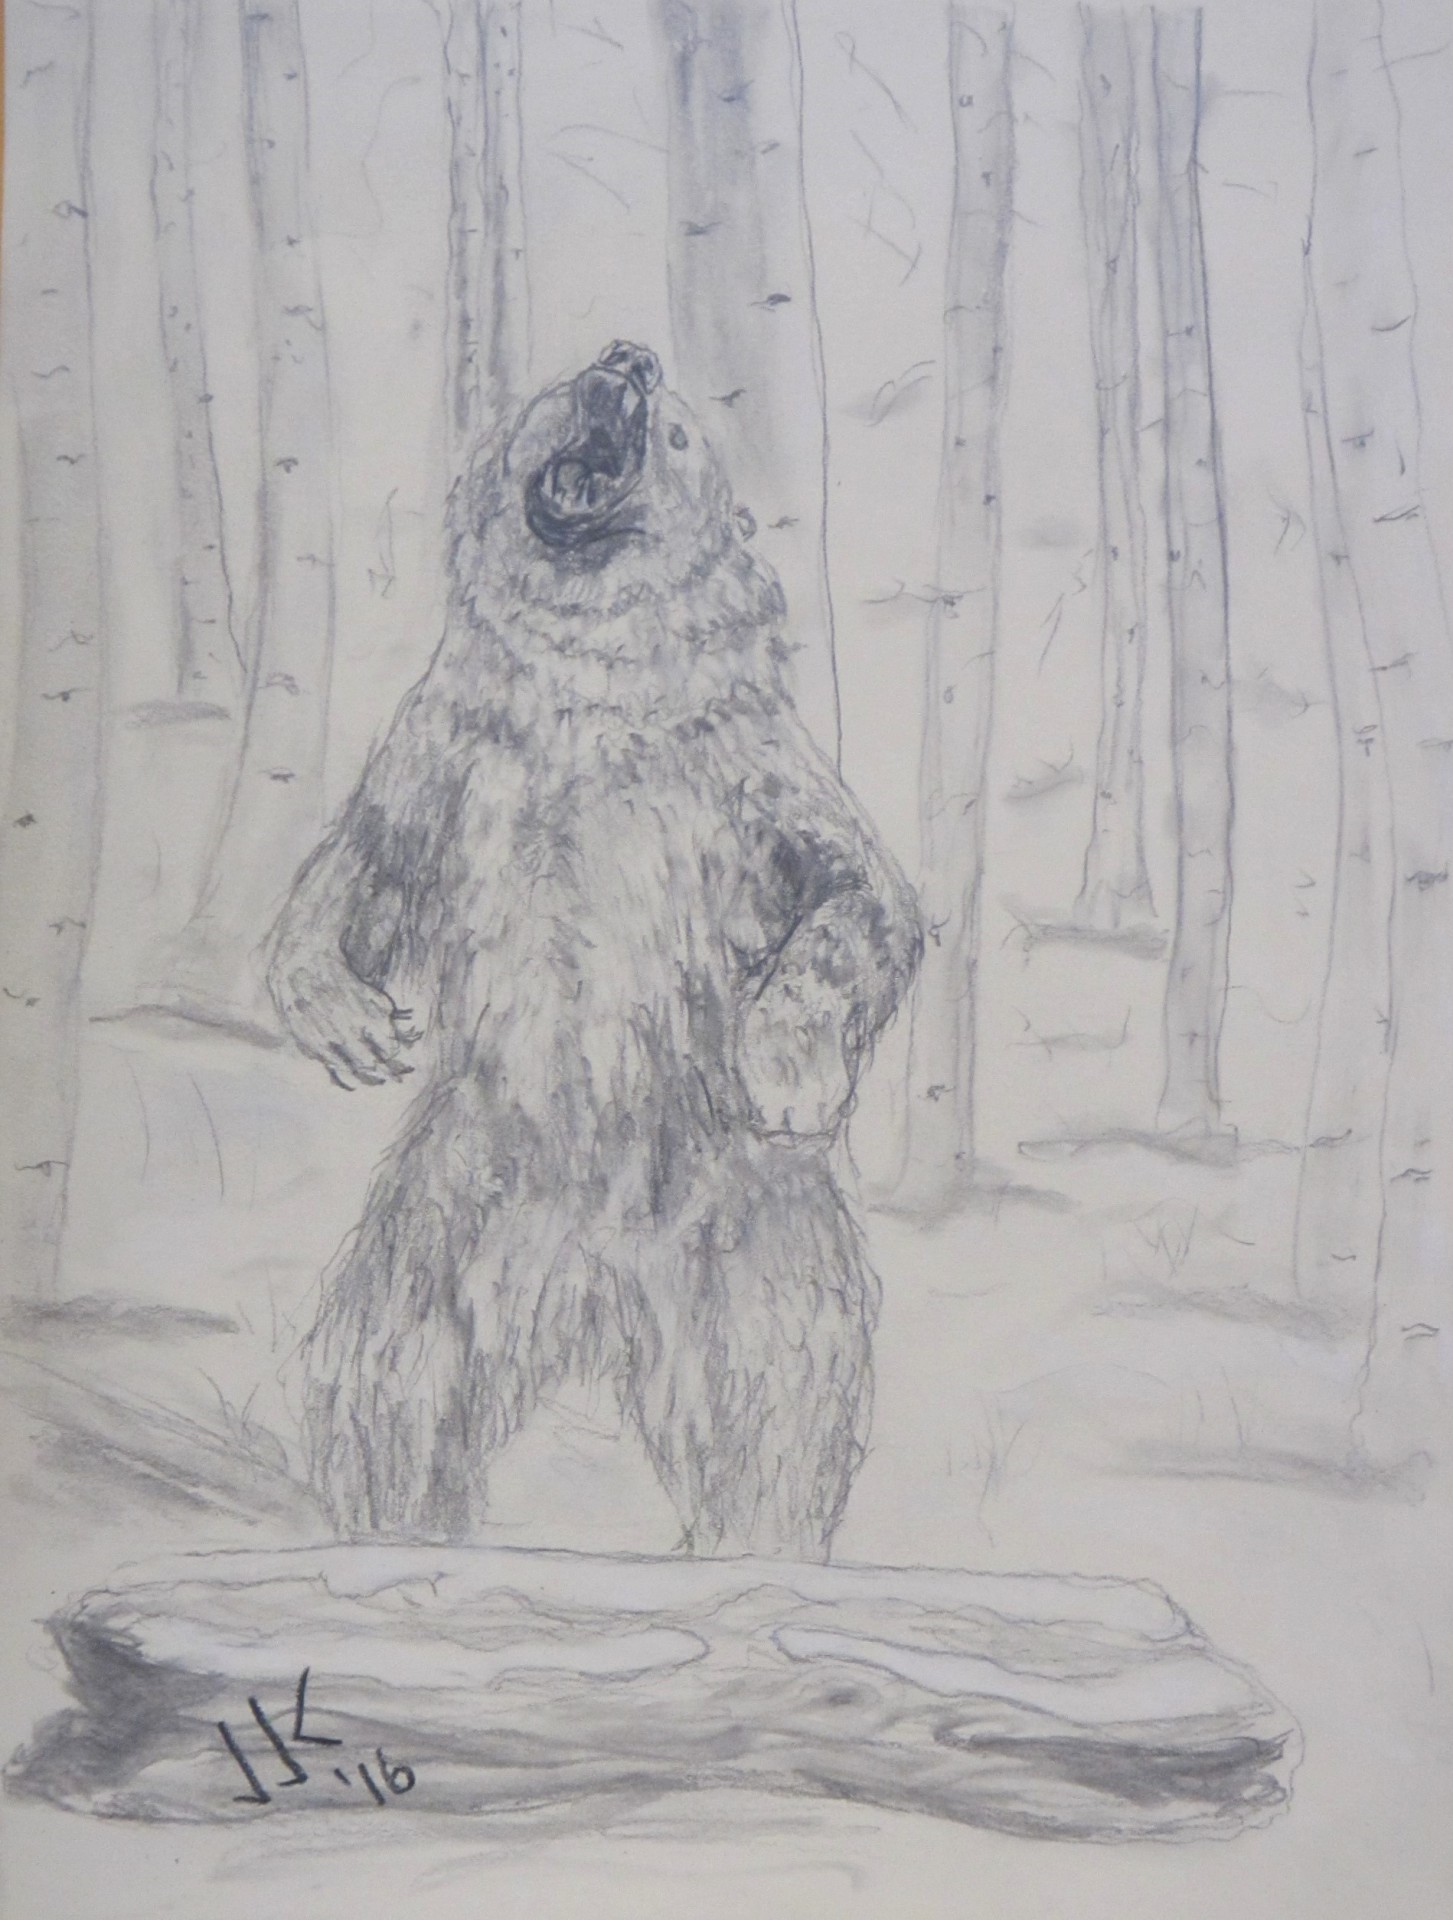 Pencil drawing of a grizzly bear in the woods growling and rising on its hind legs.